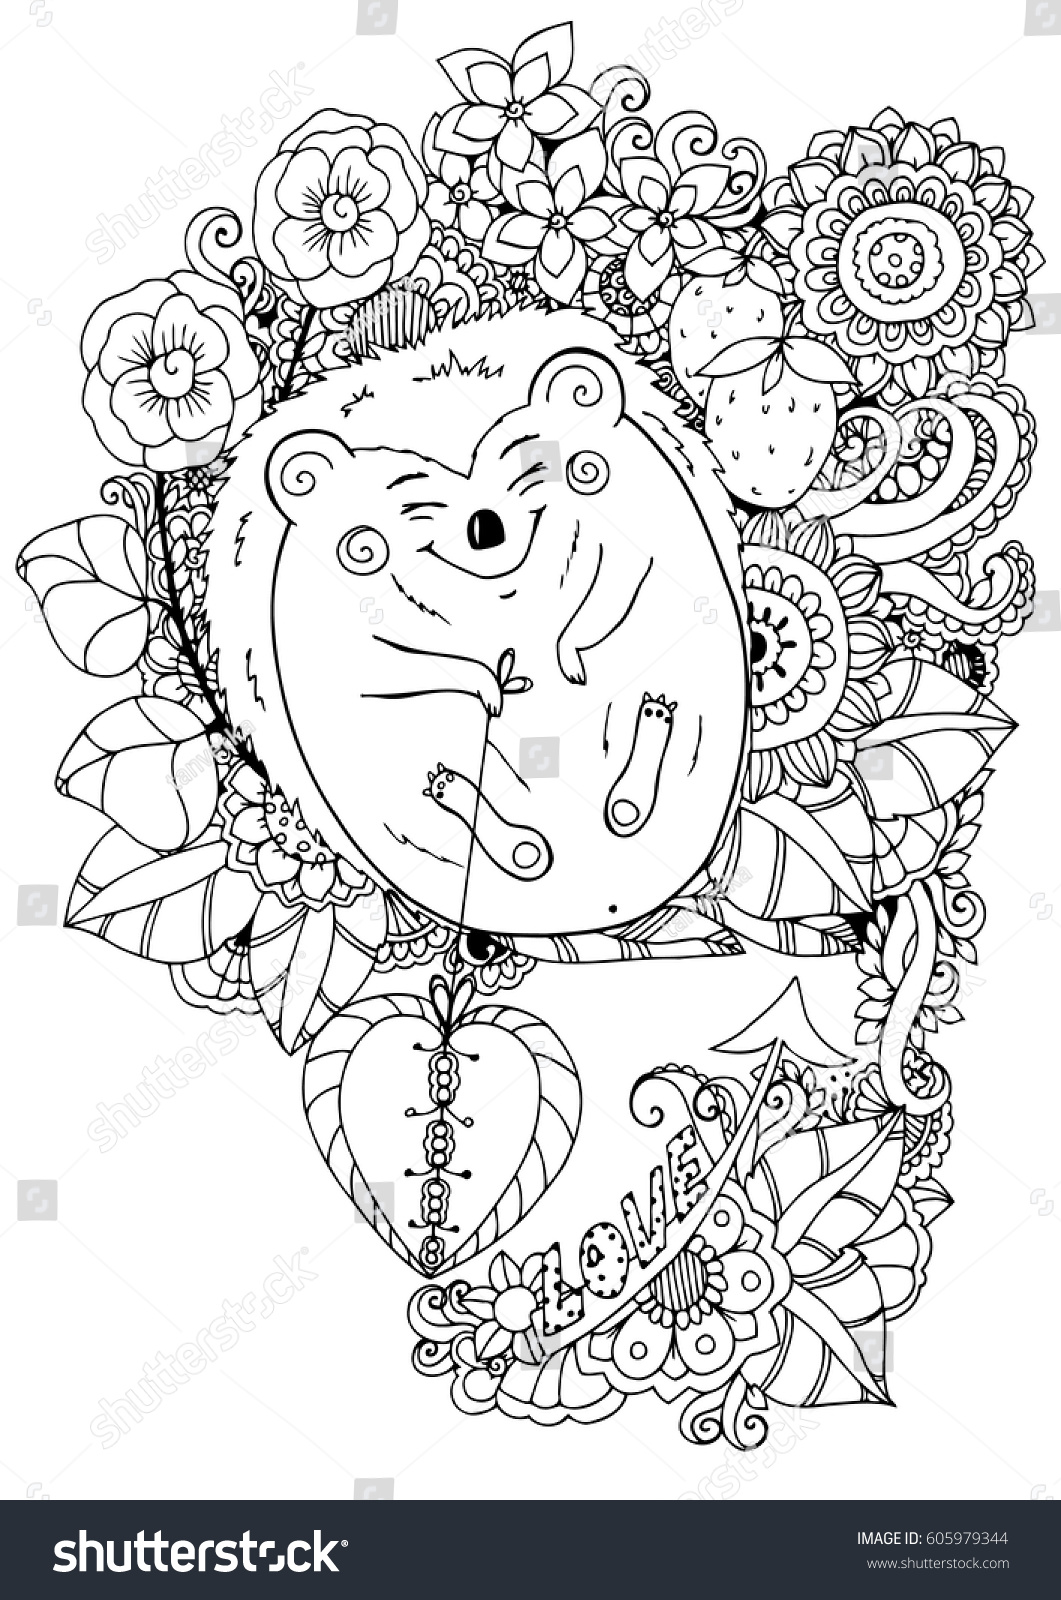 Vector Illustration Zentangl Hedgehog Flowers Love Stock